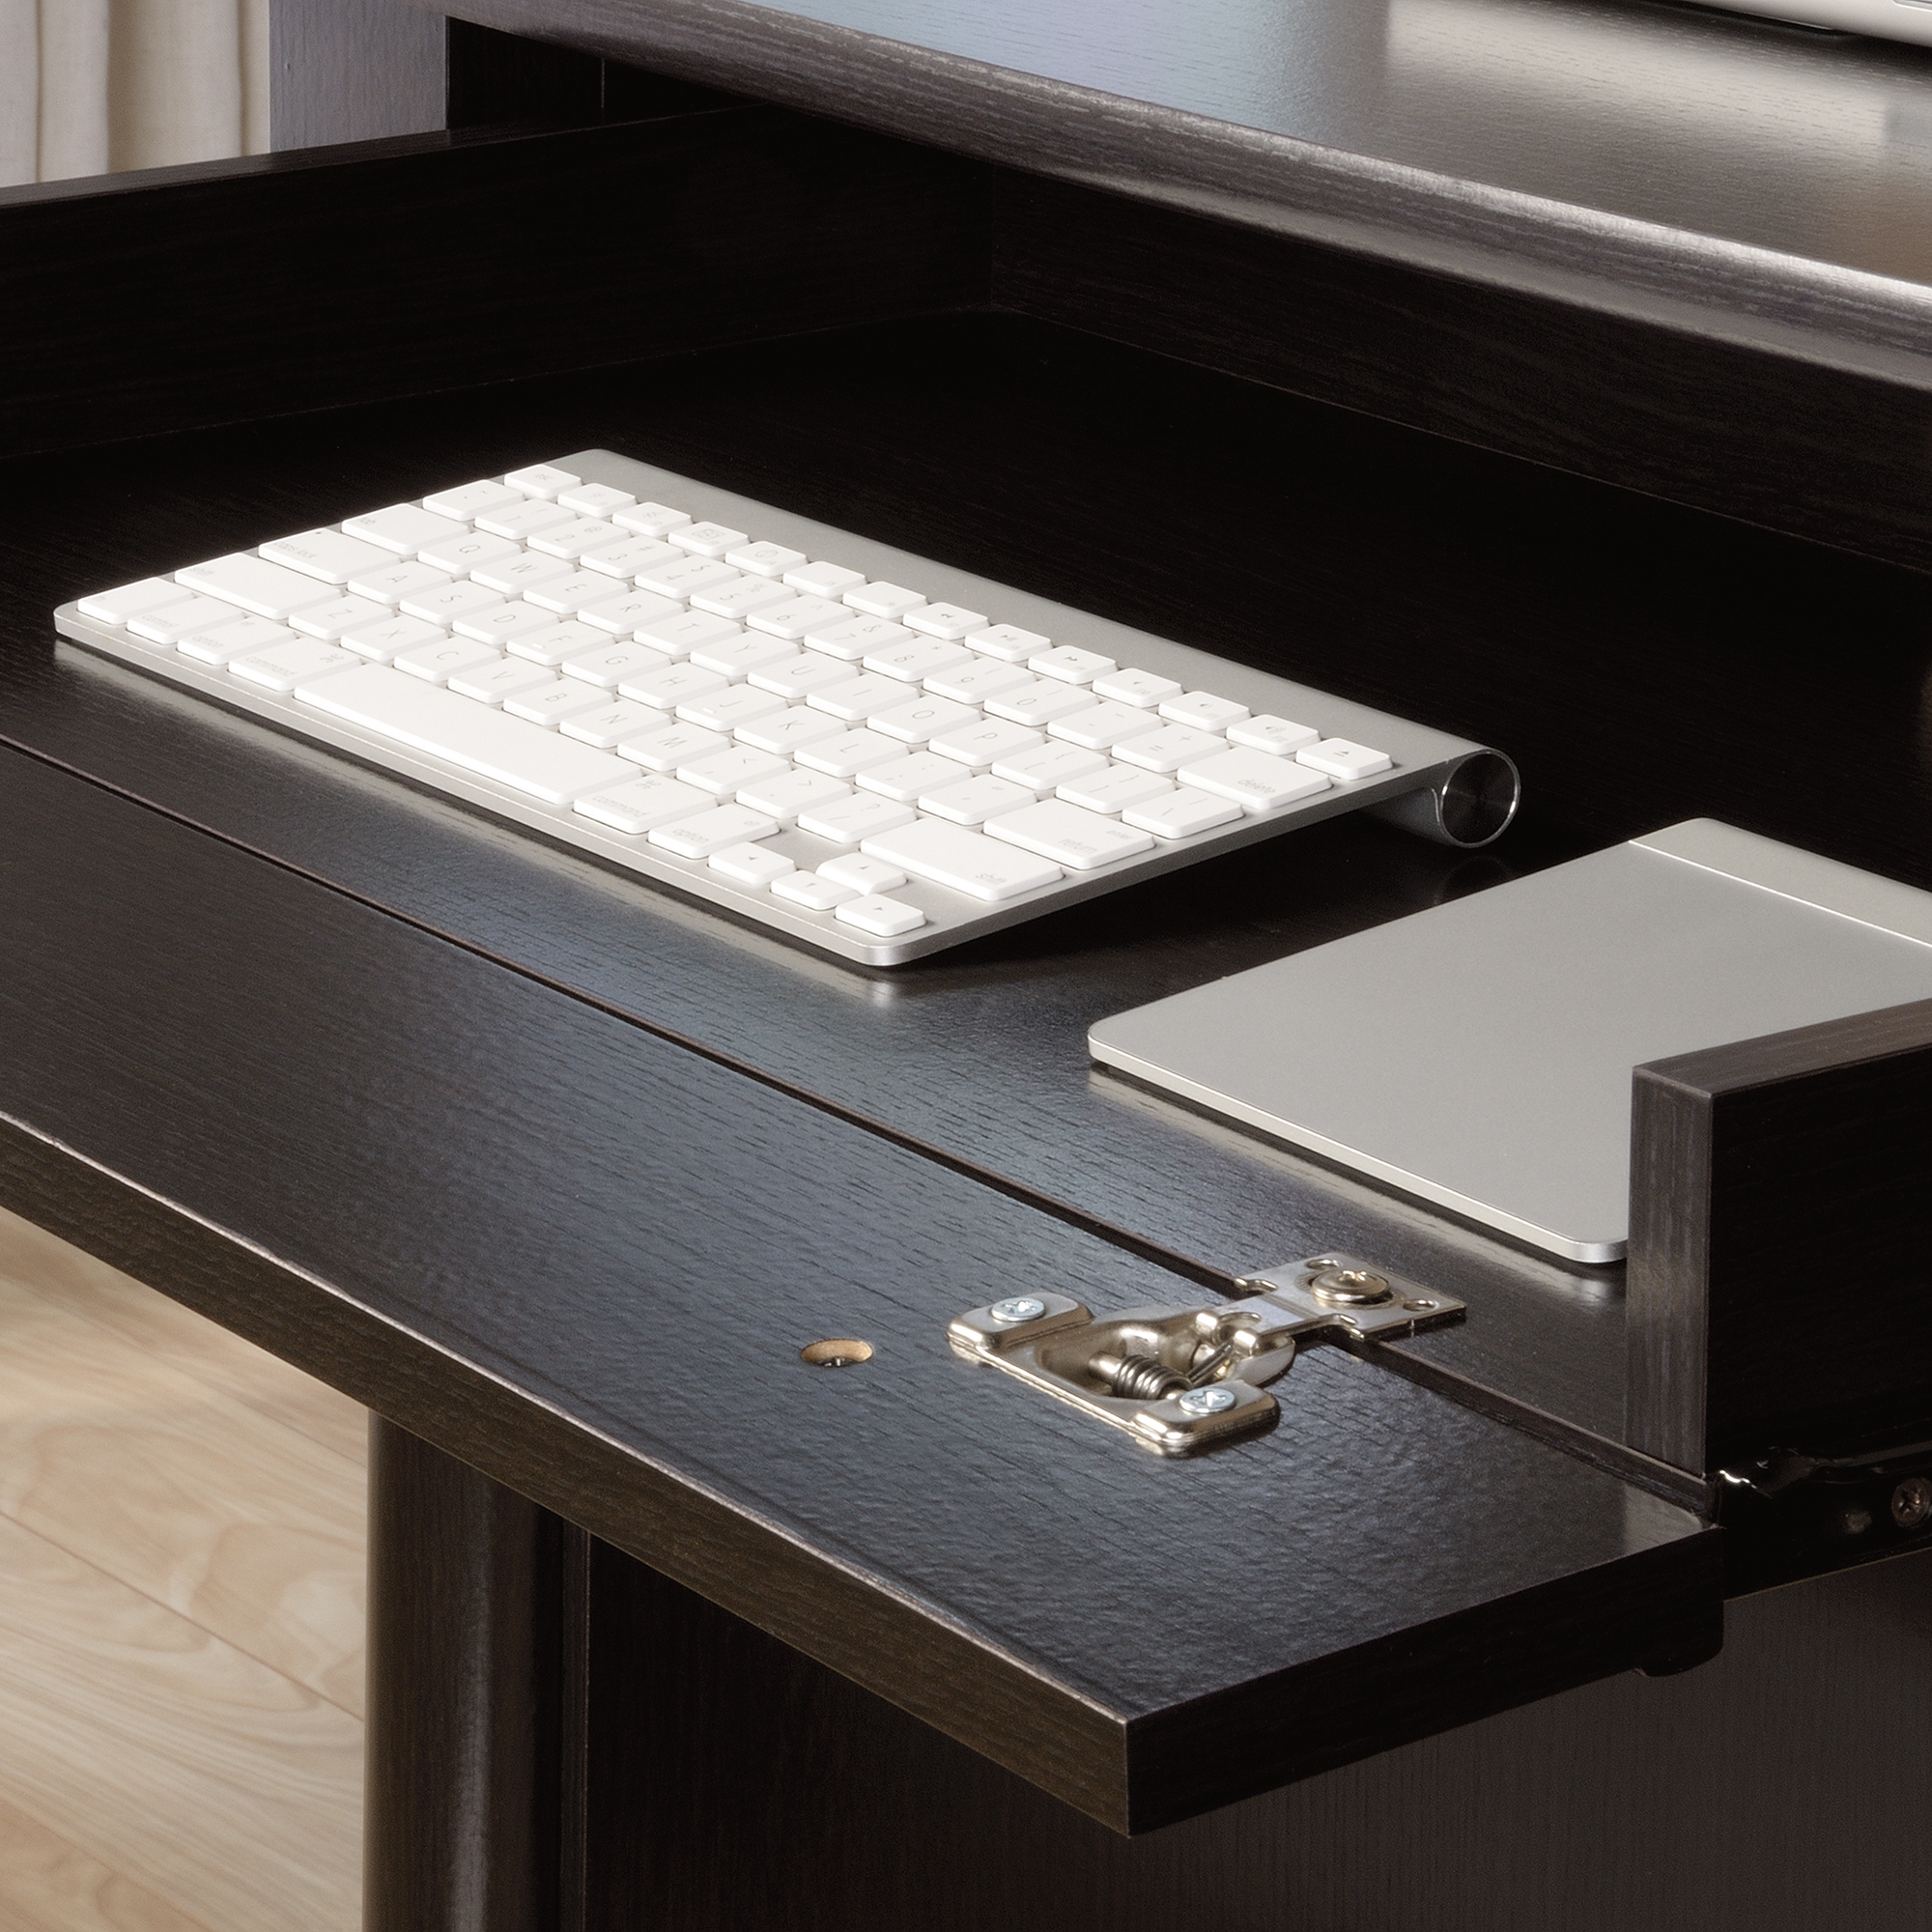 Lower Drawer With Full Extension Slides Holds Letter Size Files Large Shelf Features Flip Down Panel For